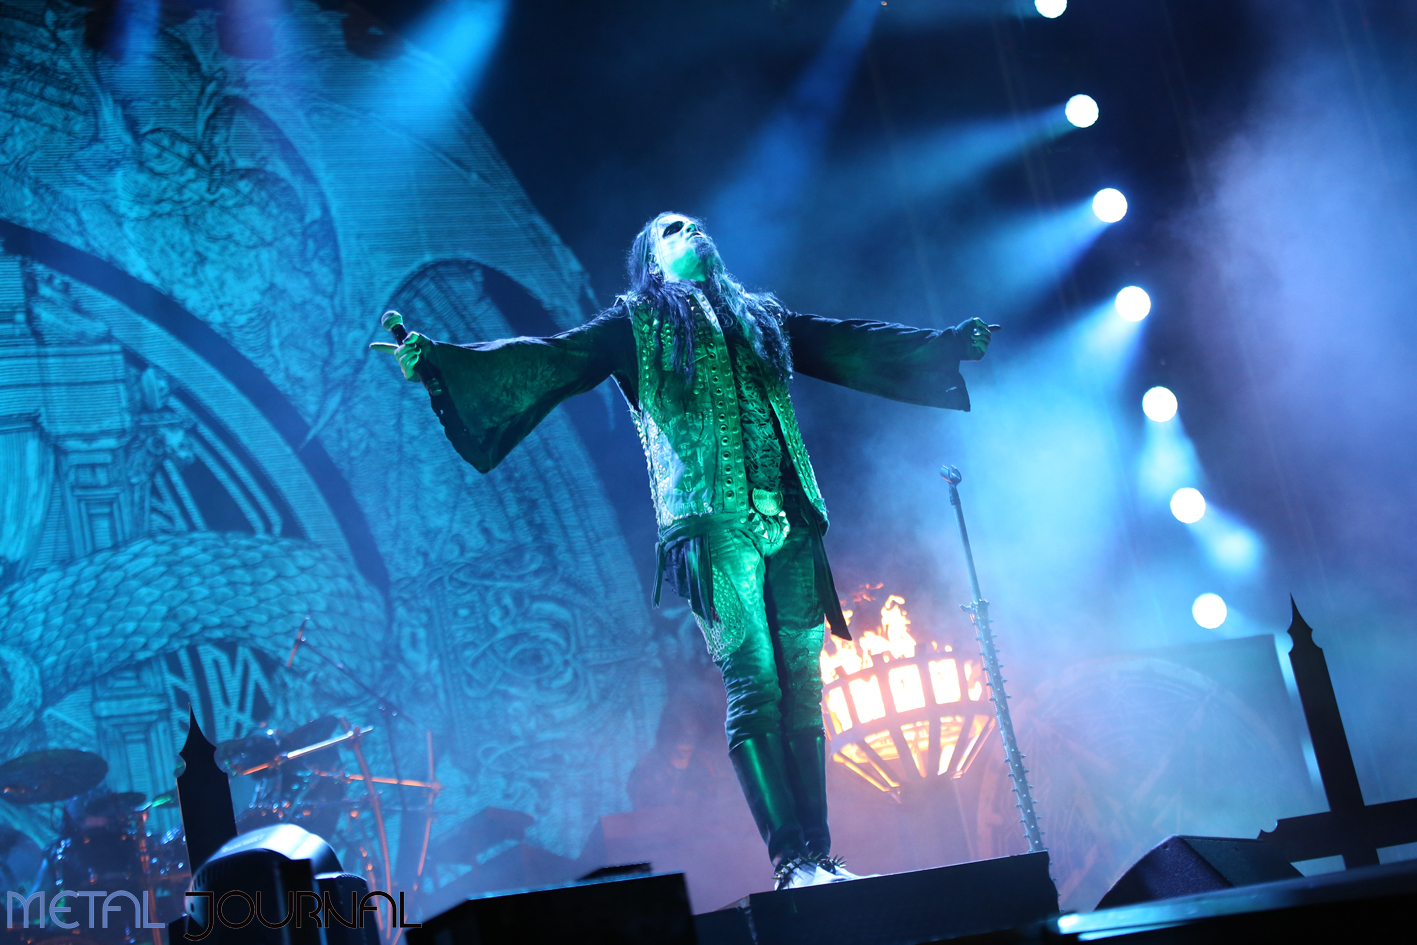 dimmu borgir rock fest 18 - metal journal pic 1